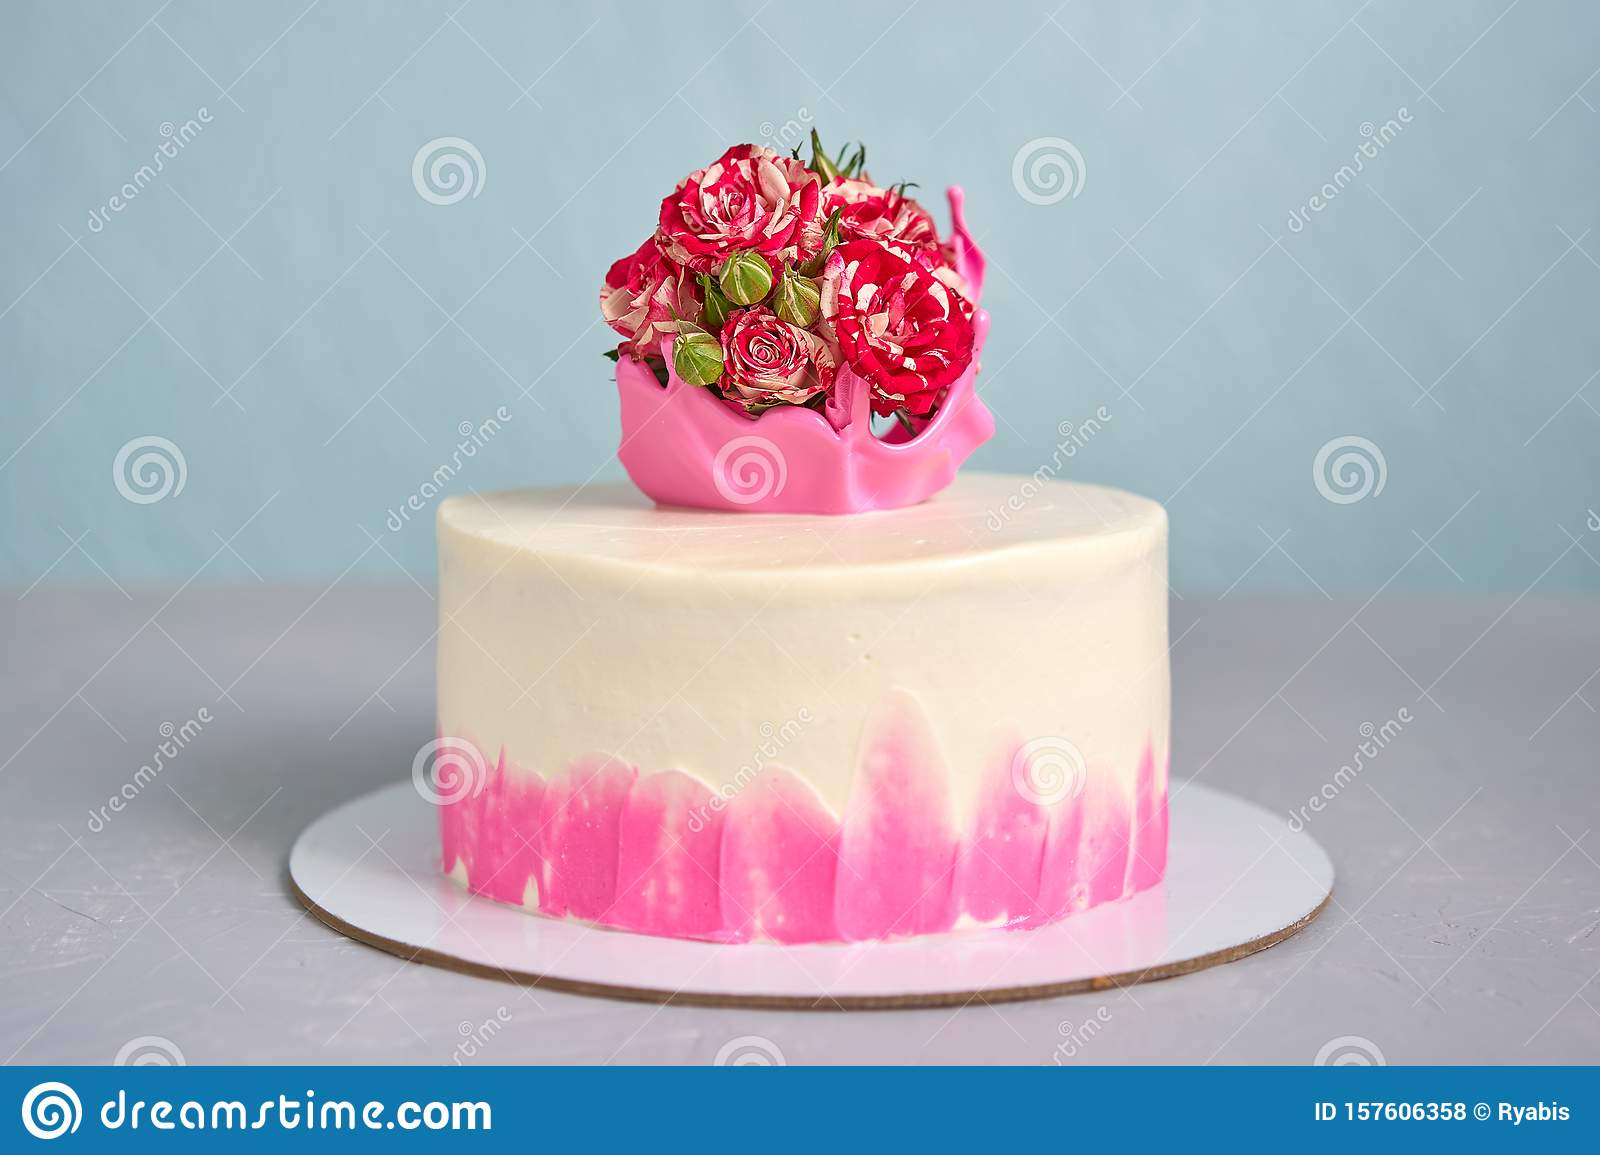 Homemade Cake Decorated With A Crown Of Caramel With A